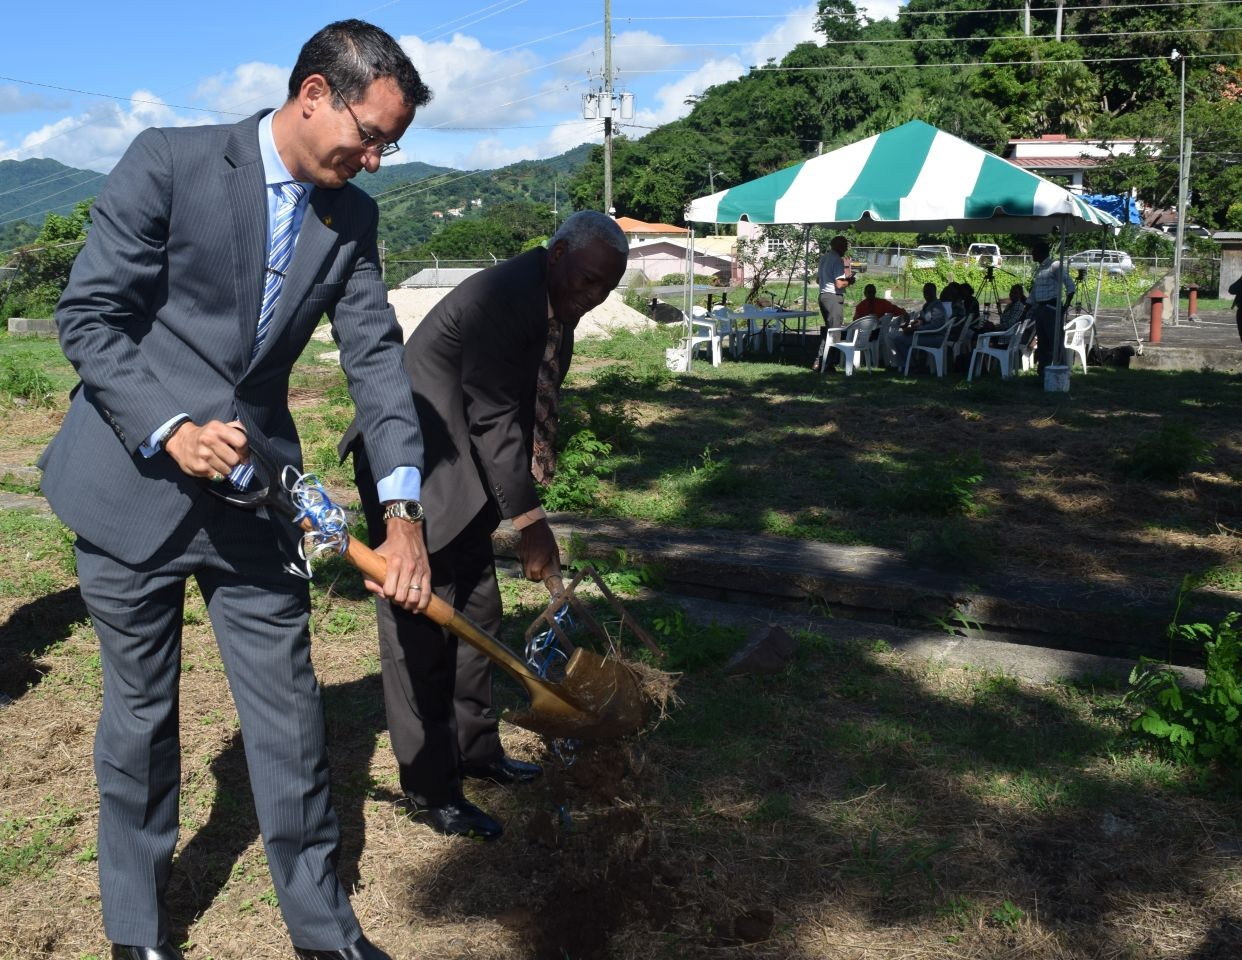 Sod turned for two major water projects in Grenada